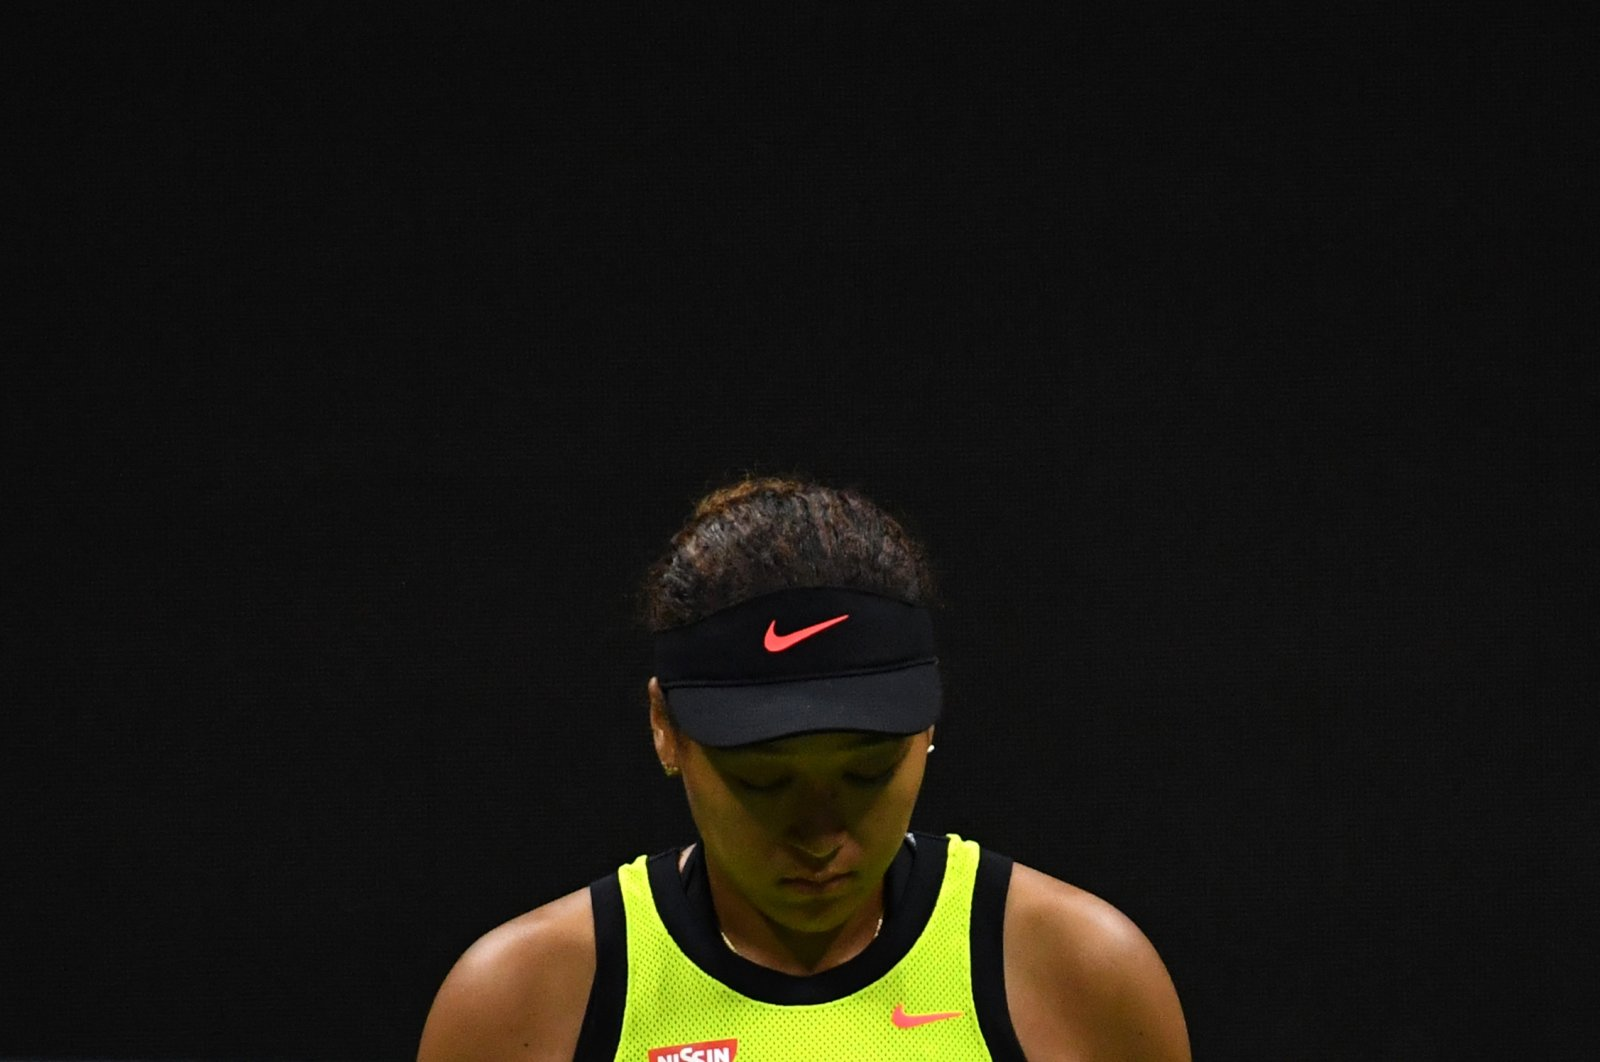 Japan's Naomi Osaka reacts during her 2021 U.S. Open Tennis tournament women's singles third round match against Canada's Leylah Fernandez at the USTA Billie Jean King National Tennis Center in New York, U.S., Sept. 3, 2021. (Photo by Ed JONES via AFP)